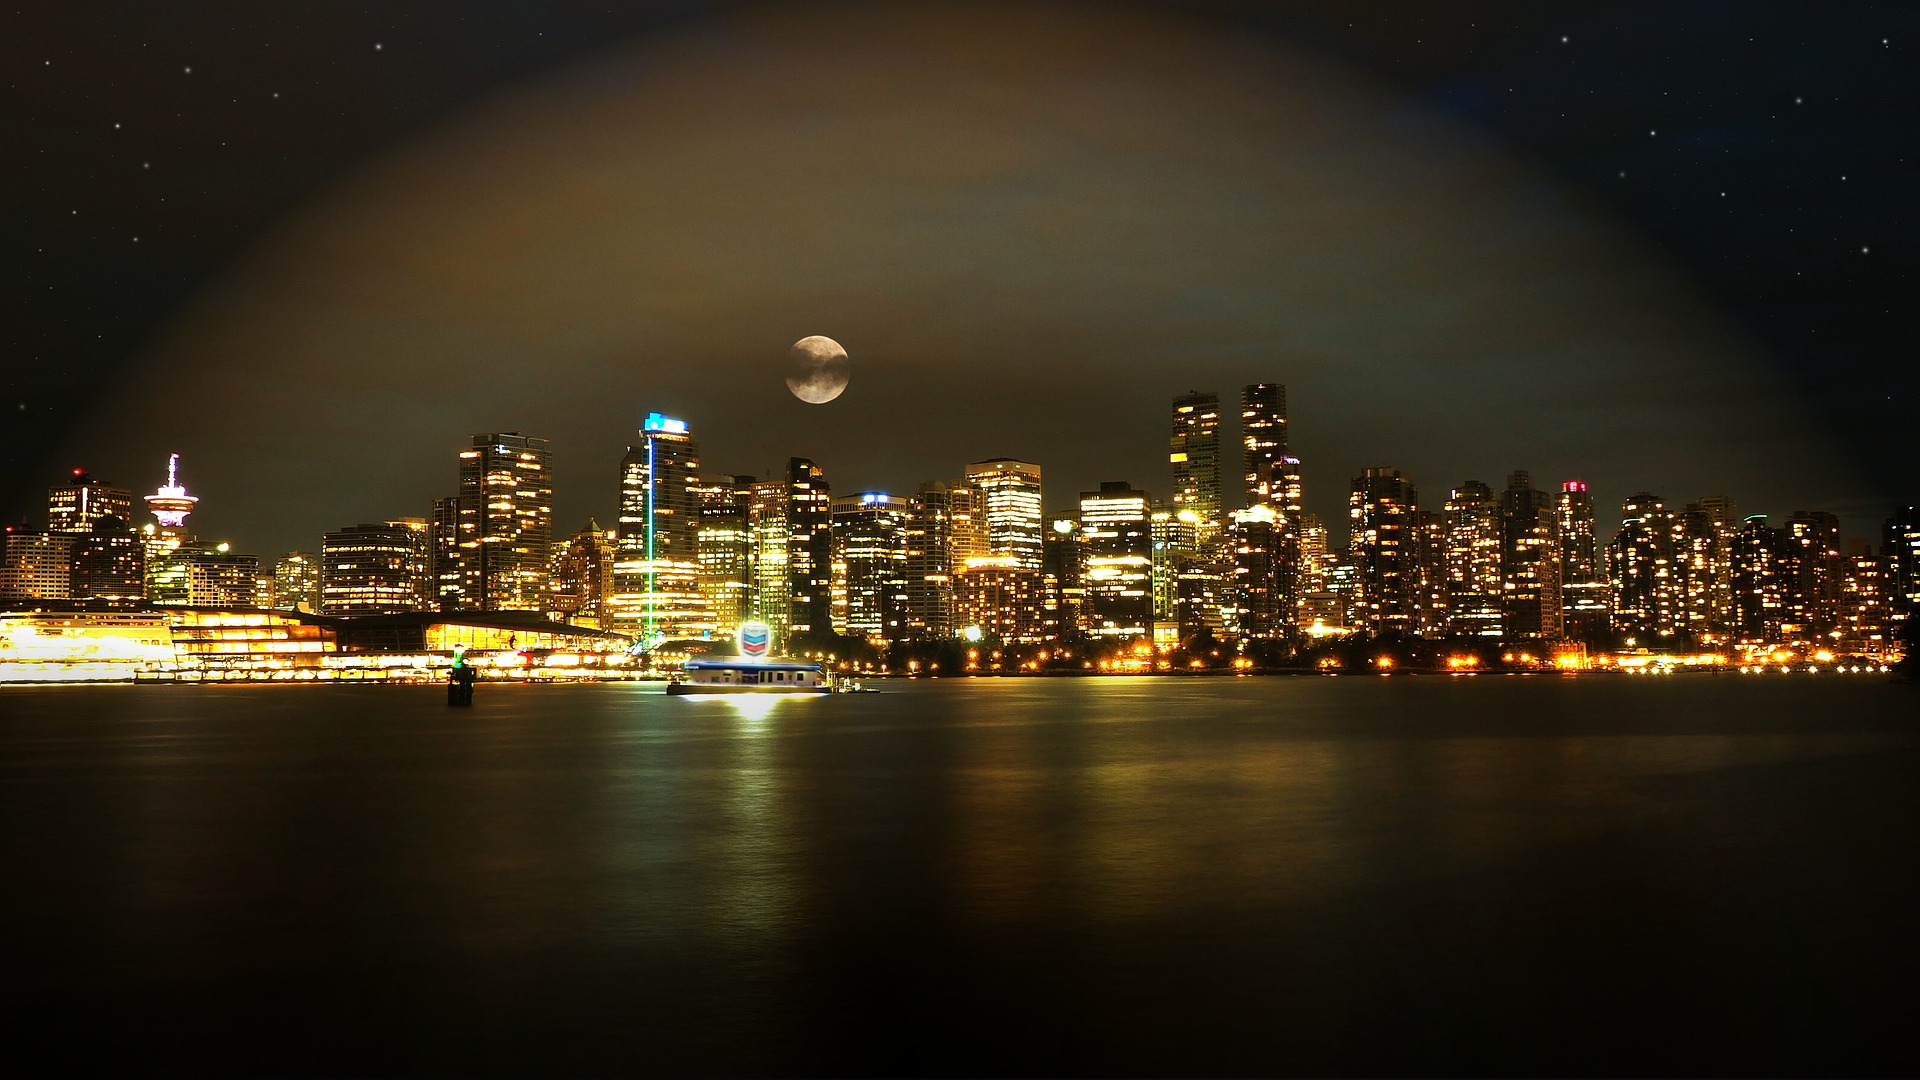 Illuminated city of Vancouver producing light pollution